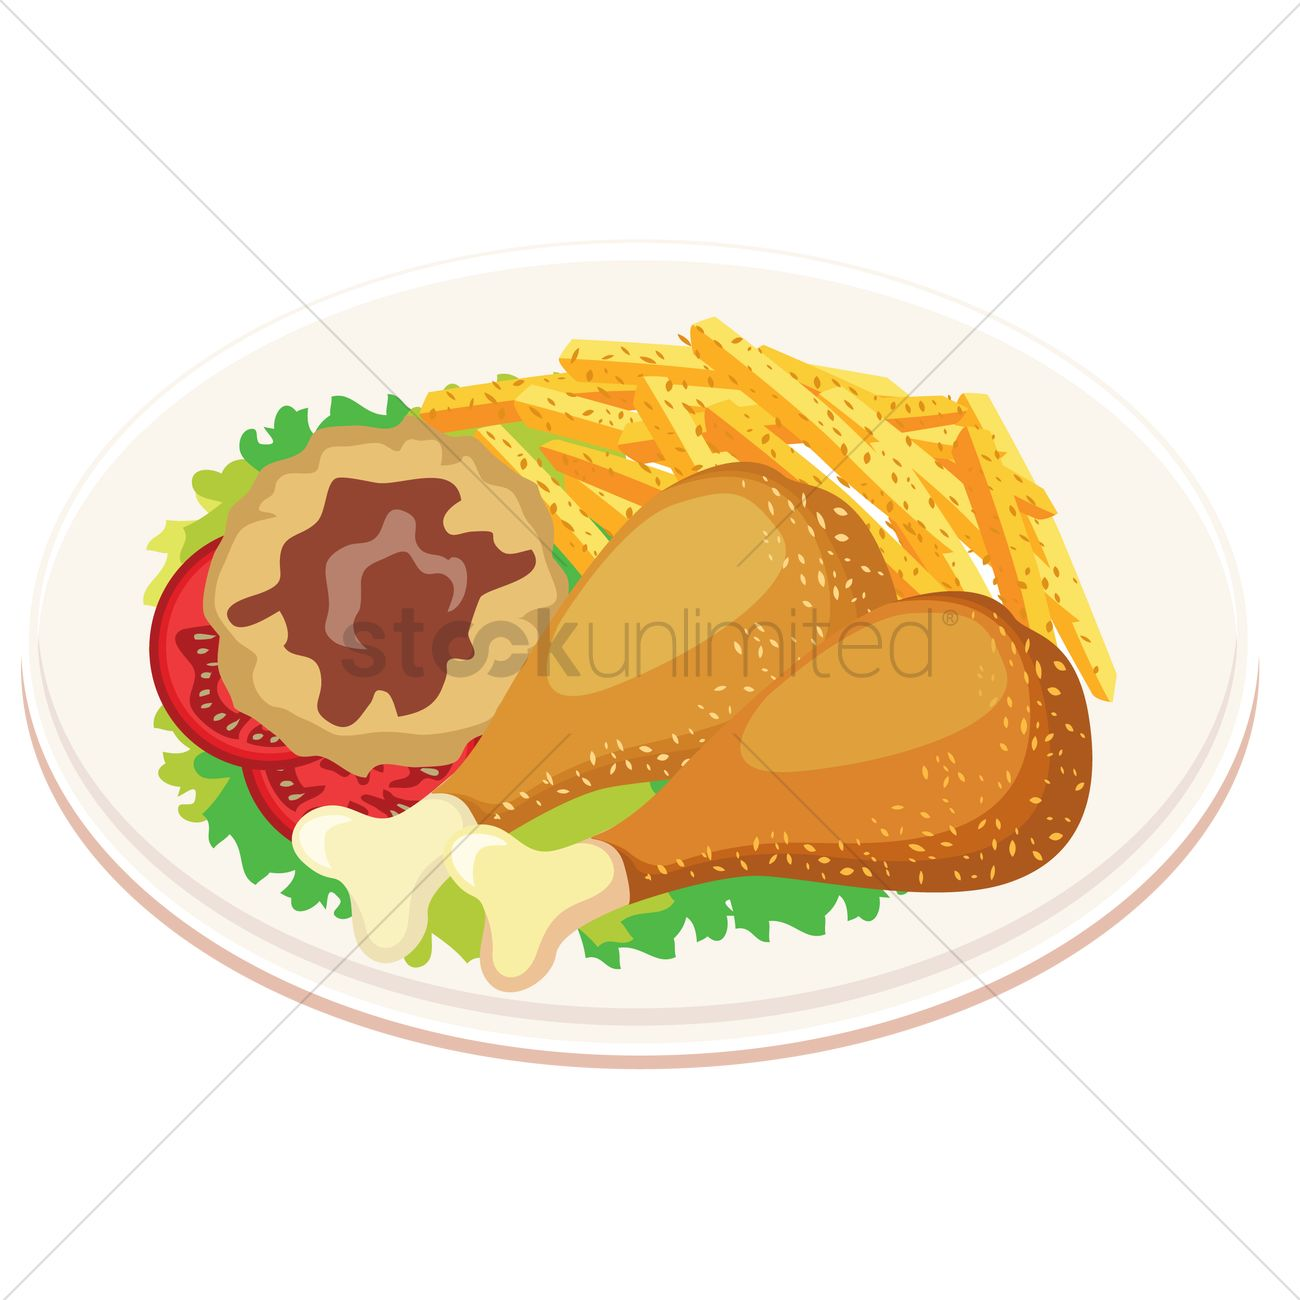 1300x1300 Chicken Drumstick With Mashed Potato And French Fries Vector Image